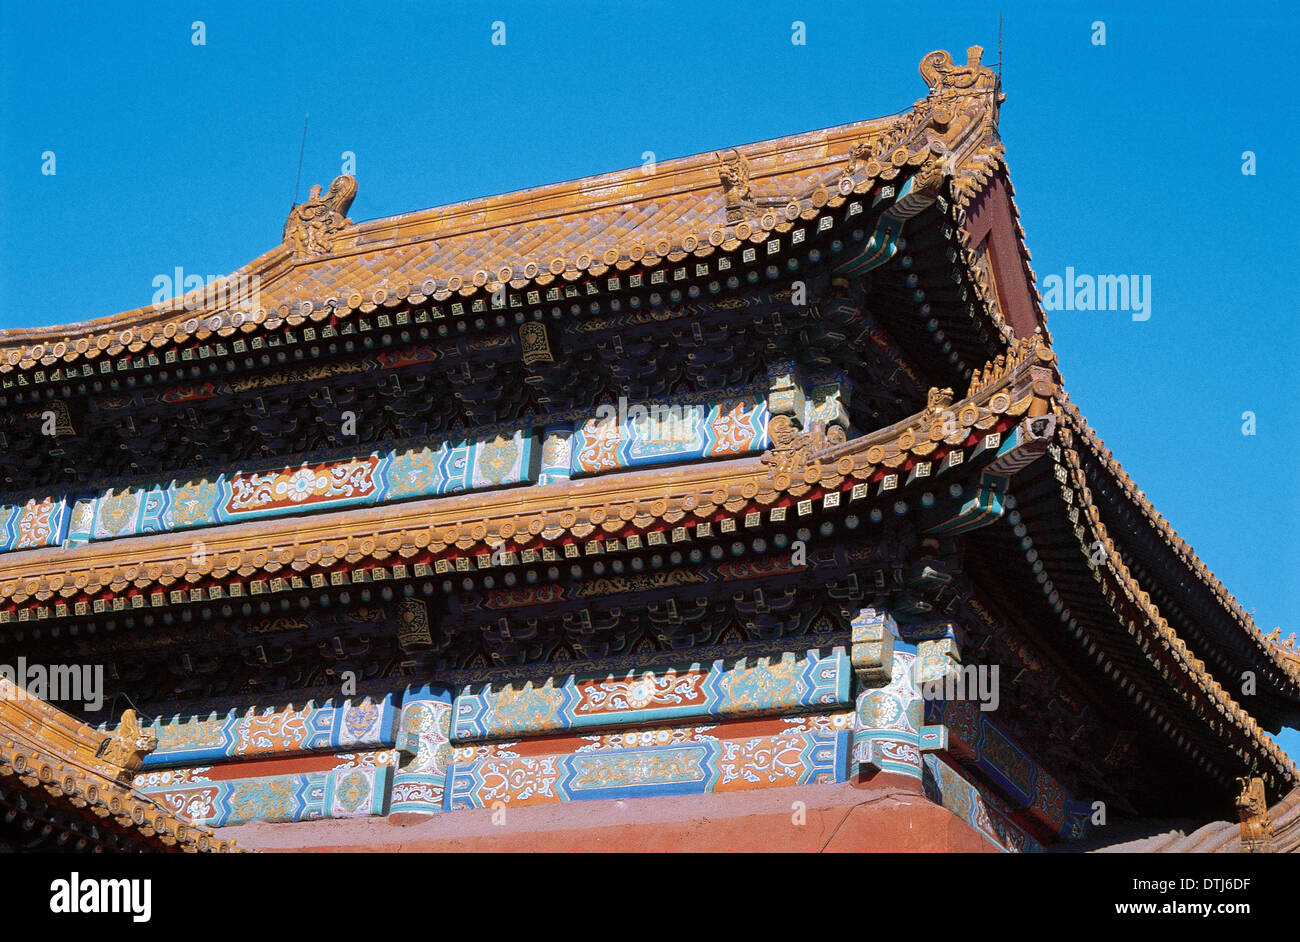 China. Beijing. Forbidden City. Roof of a building in the interior. Stock Photo